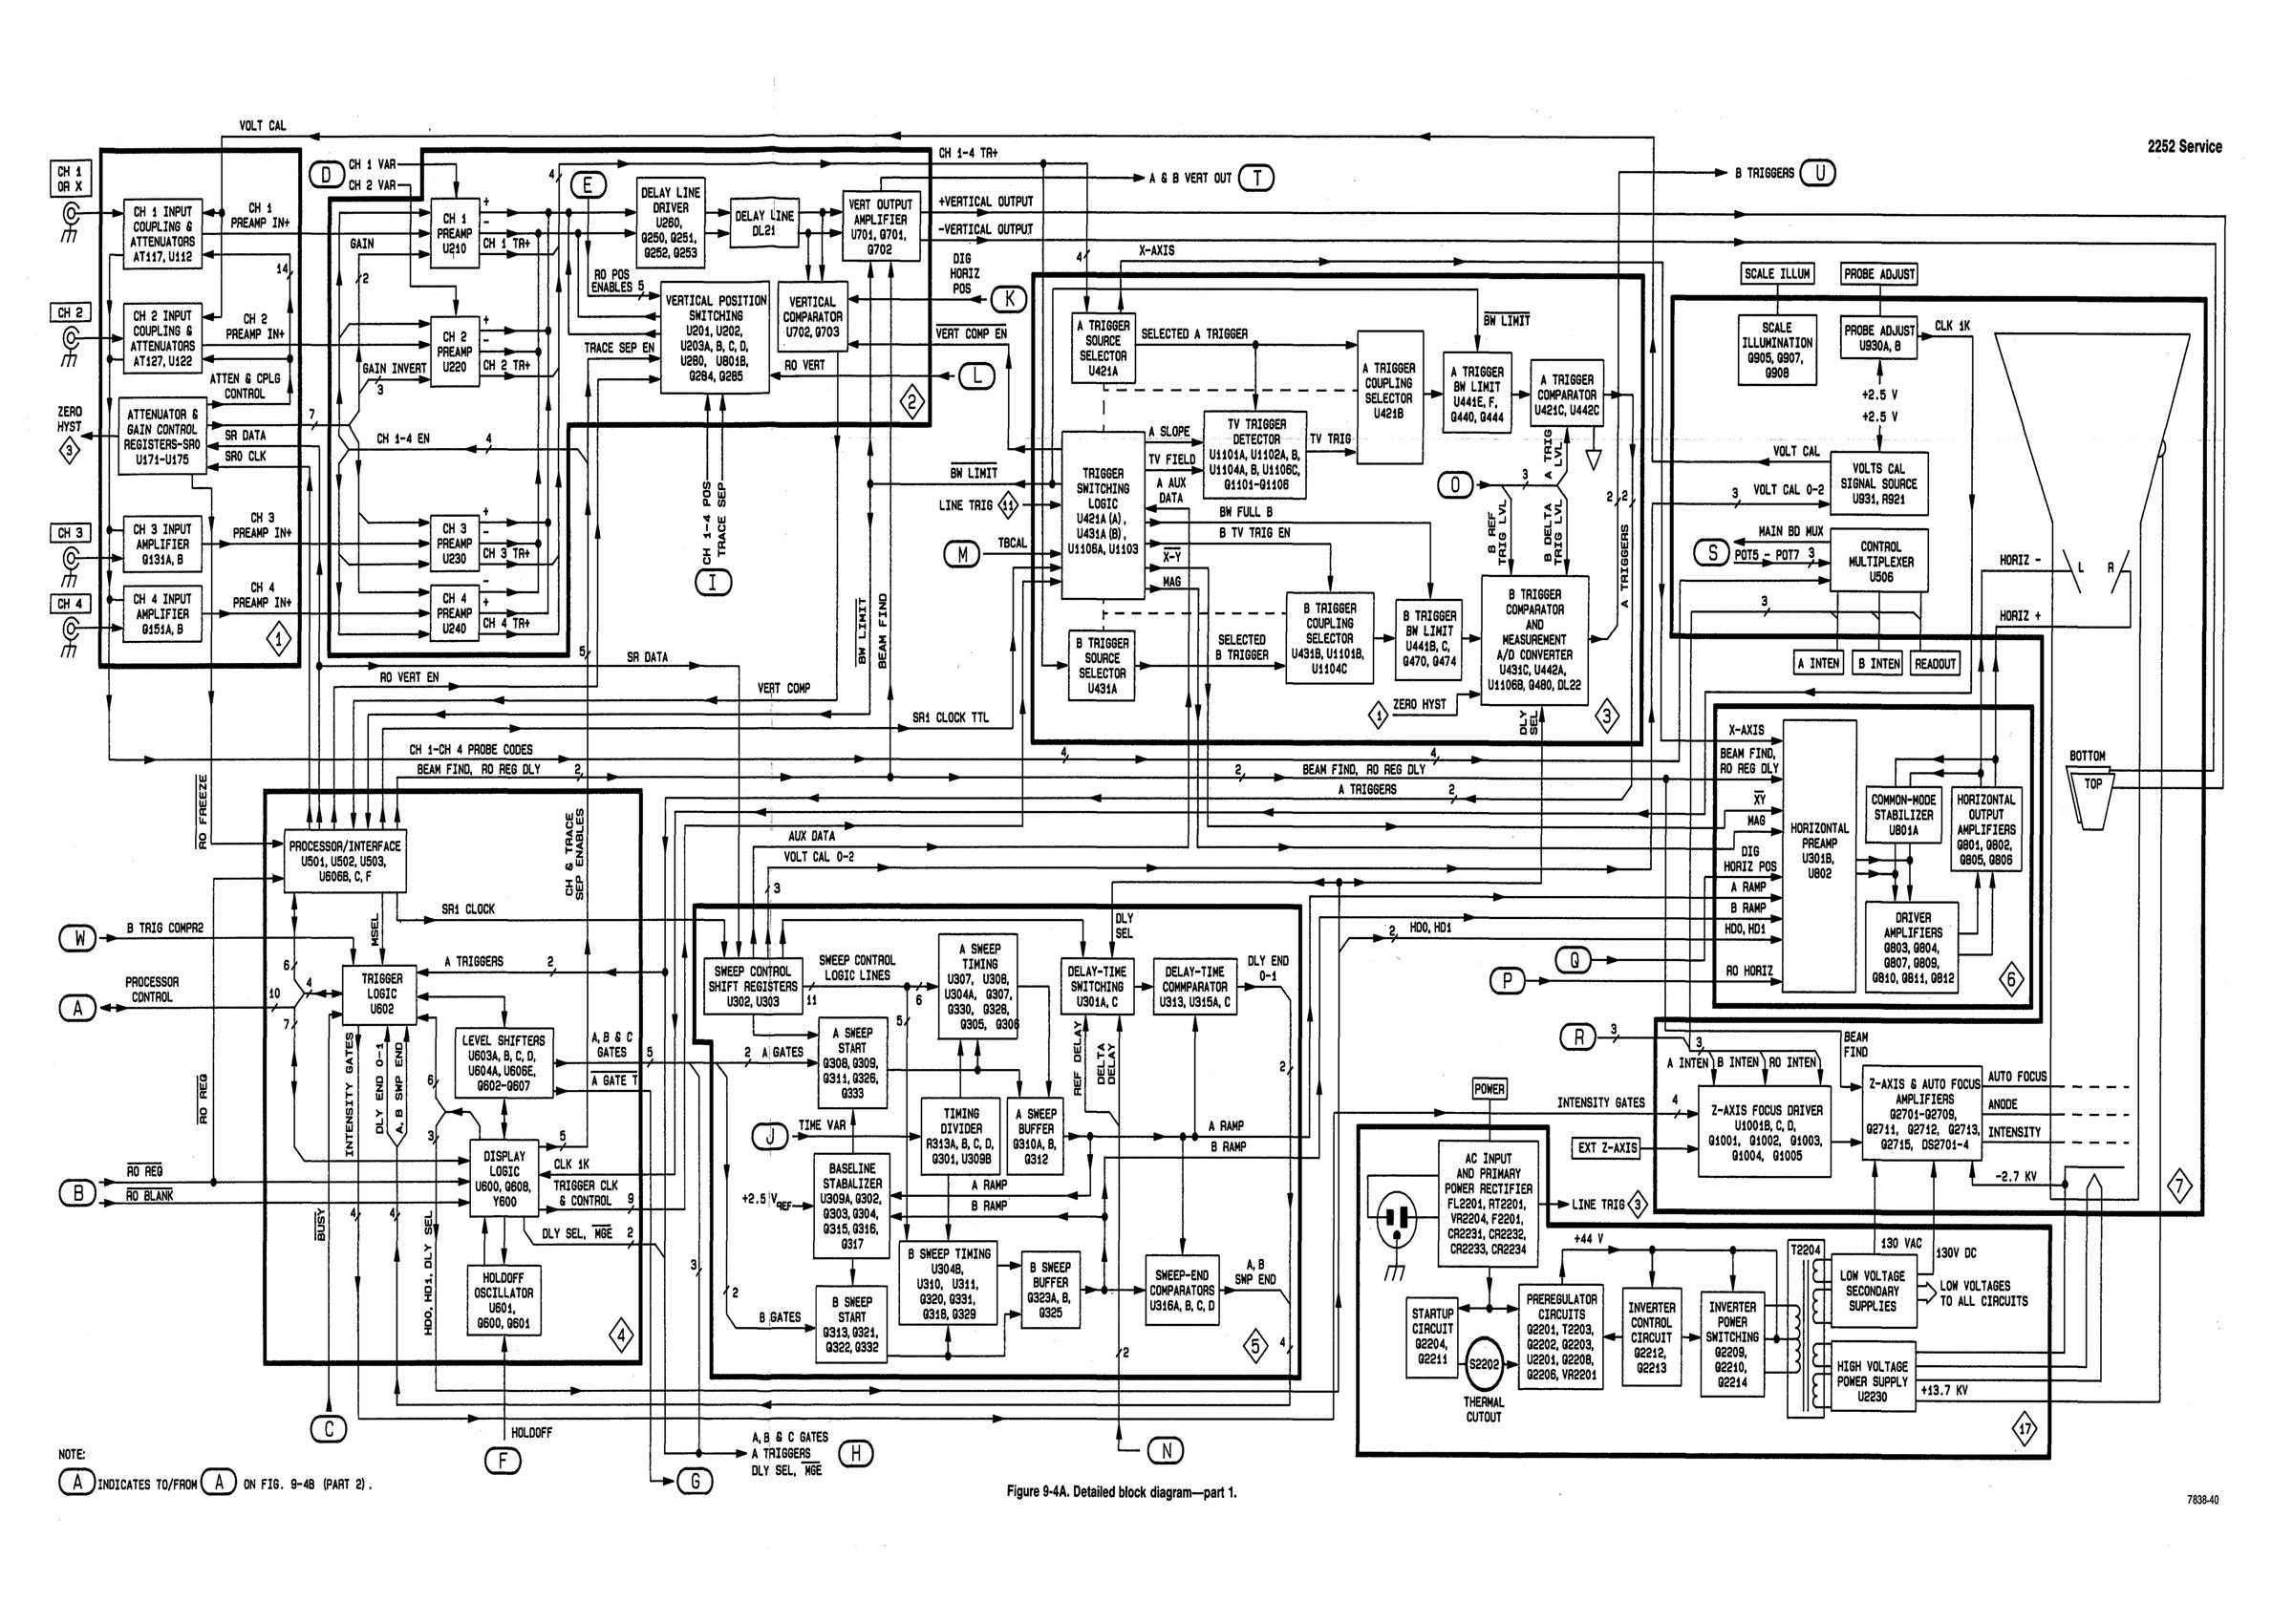 Discussion Rules For Drawing Readable Schematics Page 3 Simple Circuit Project Ideas Http Wwwelectrotechonlinecom Often You Need A Good Block Diagram Which I Also Created My Complex Designs